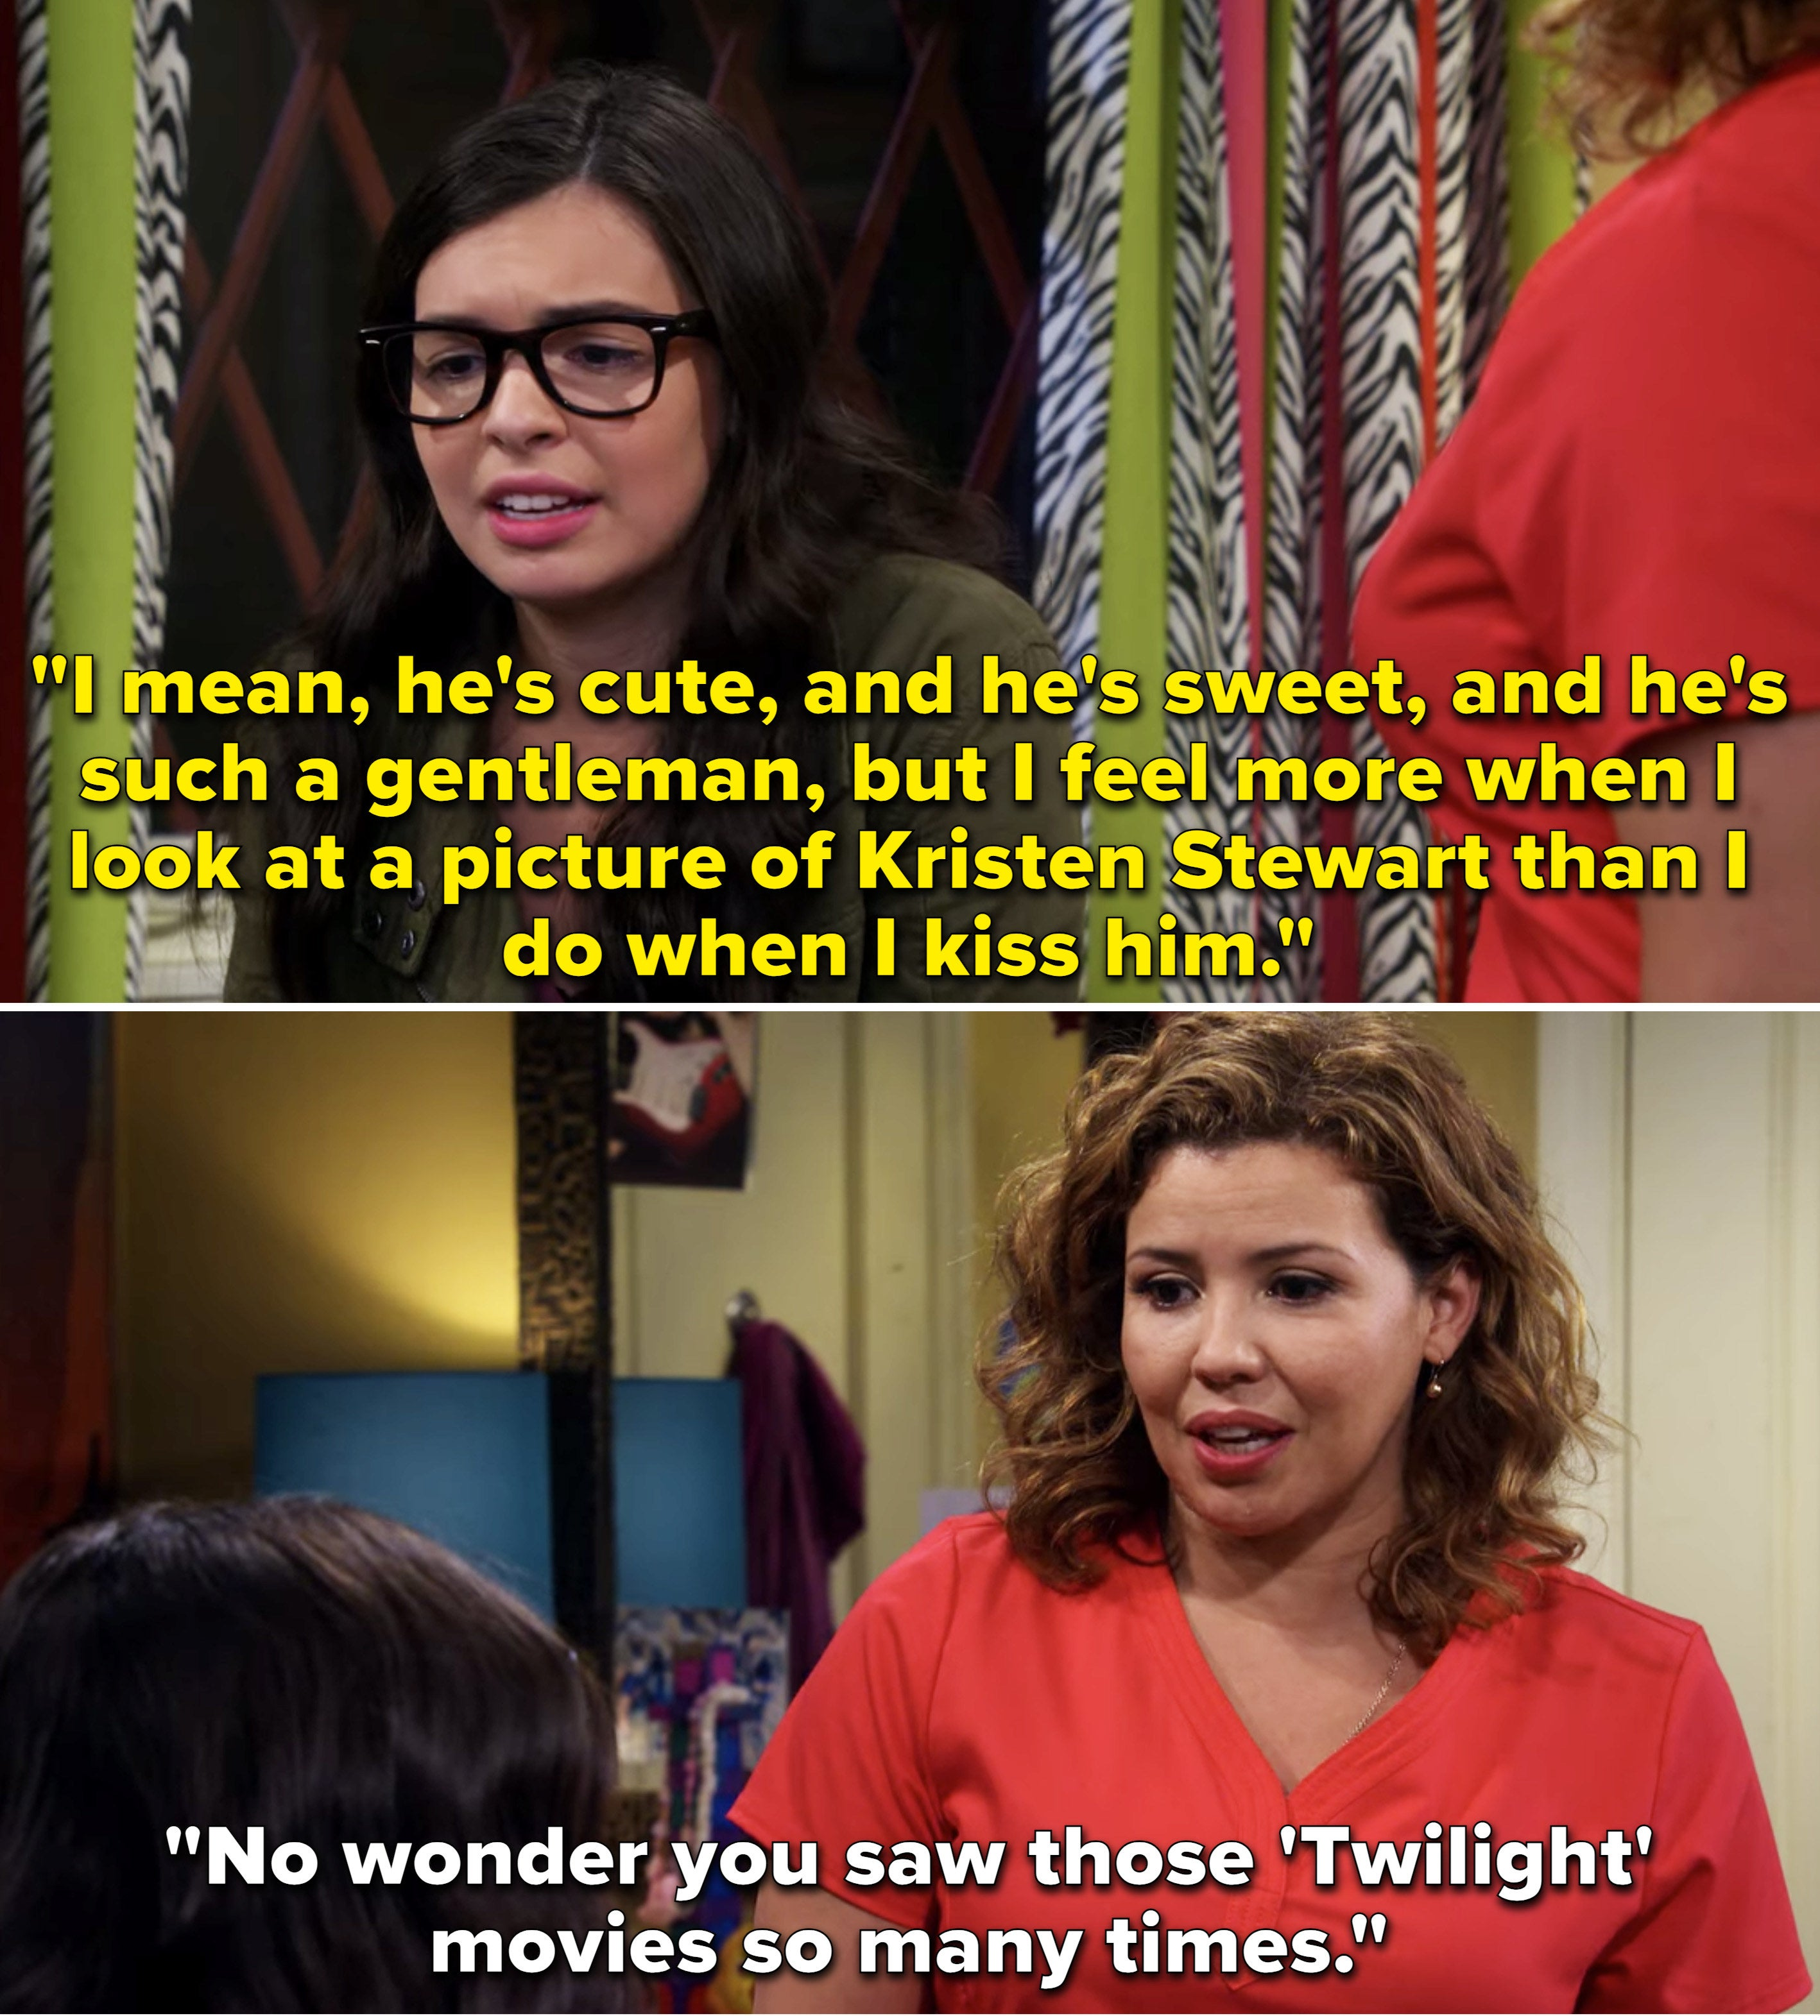 Elena telling Penelope she feels more when she looks at a picture of Kristen Stewart than she does when she kisses a boy